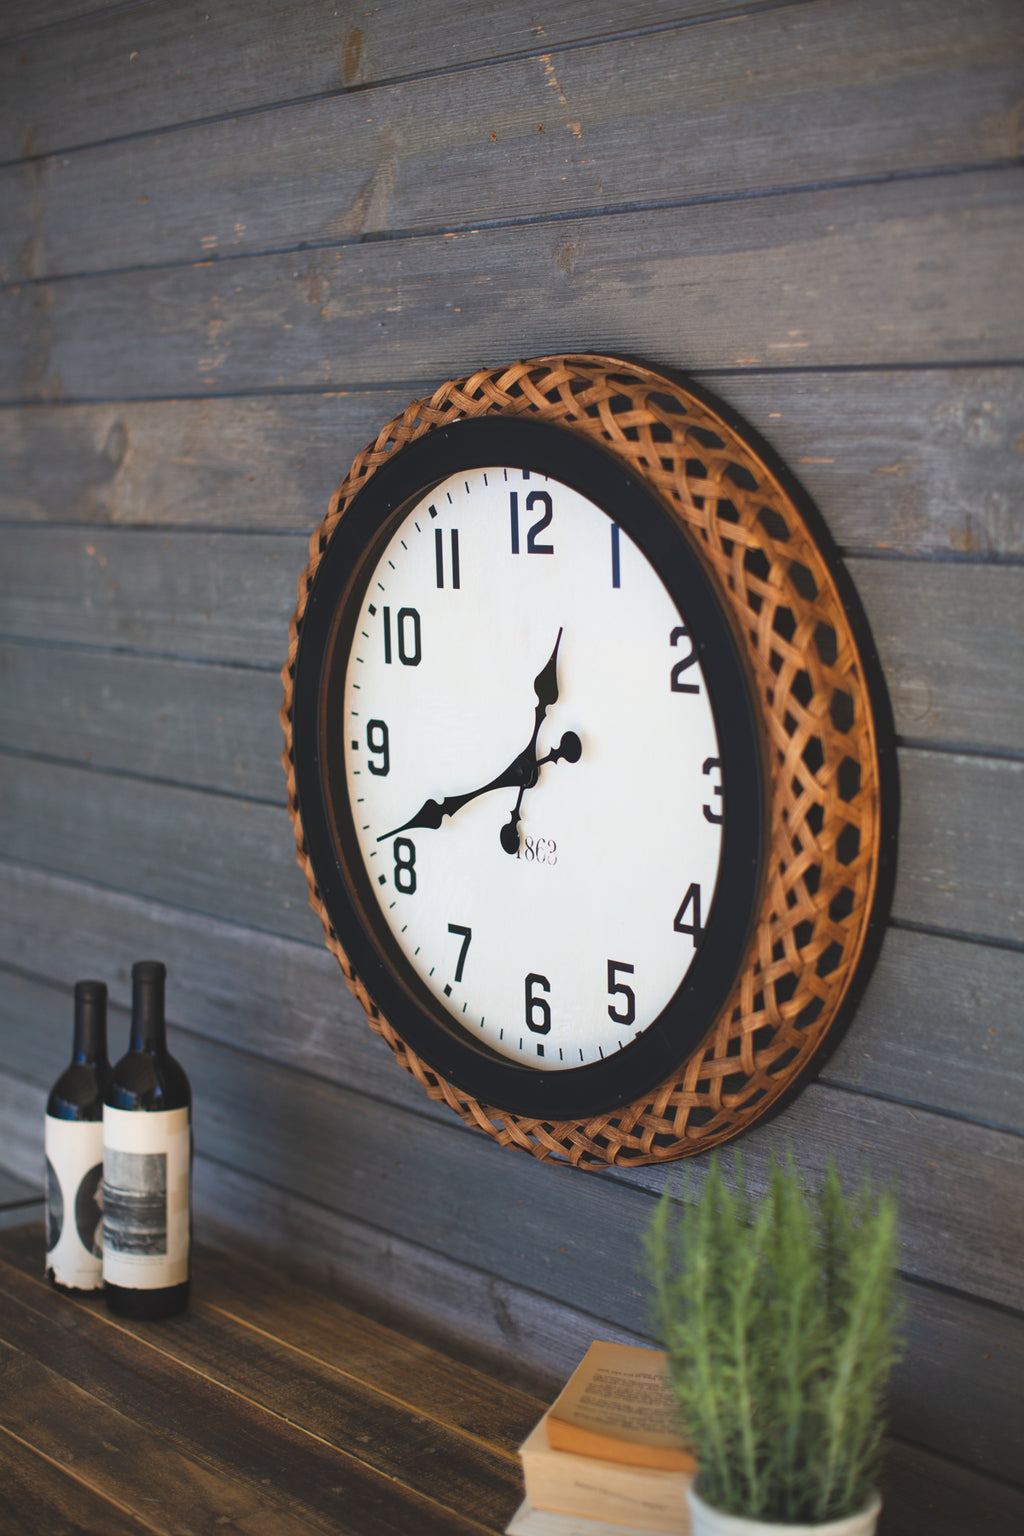 WALL CLOCK WITH BAMBOO RIM